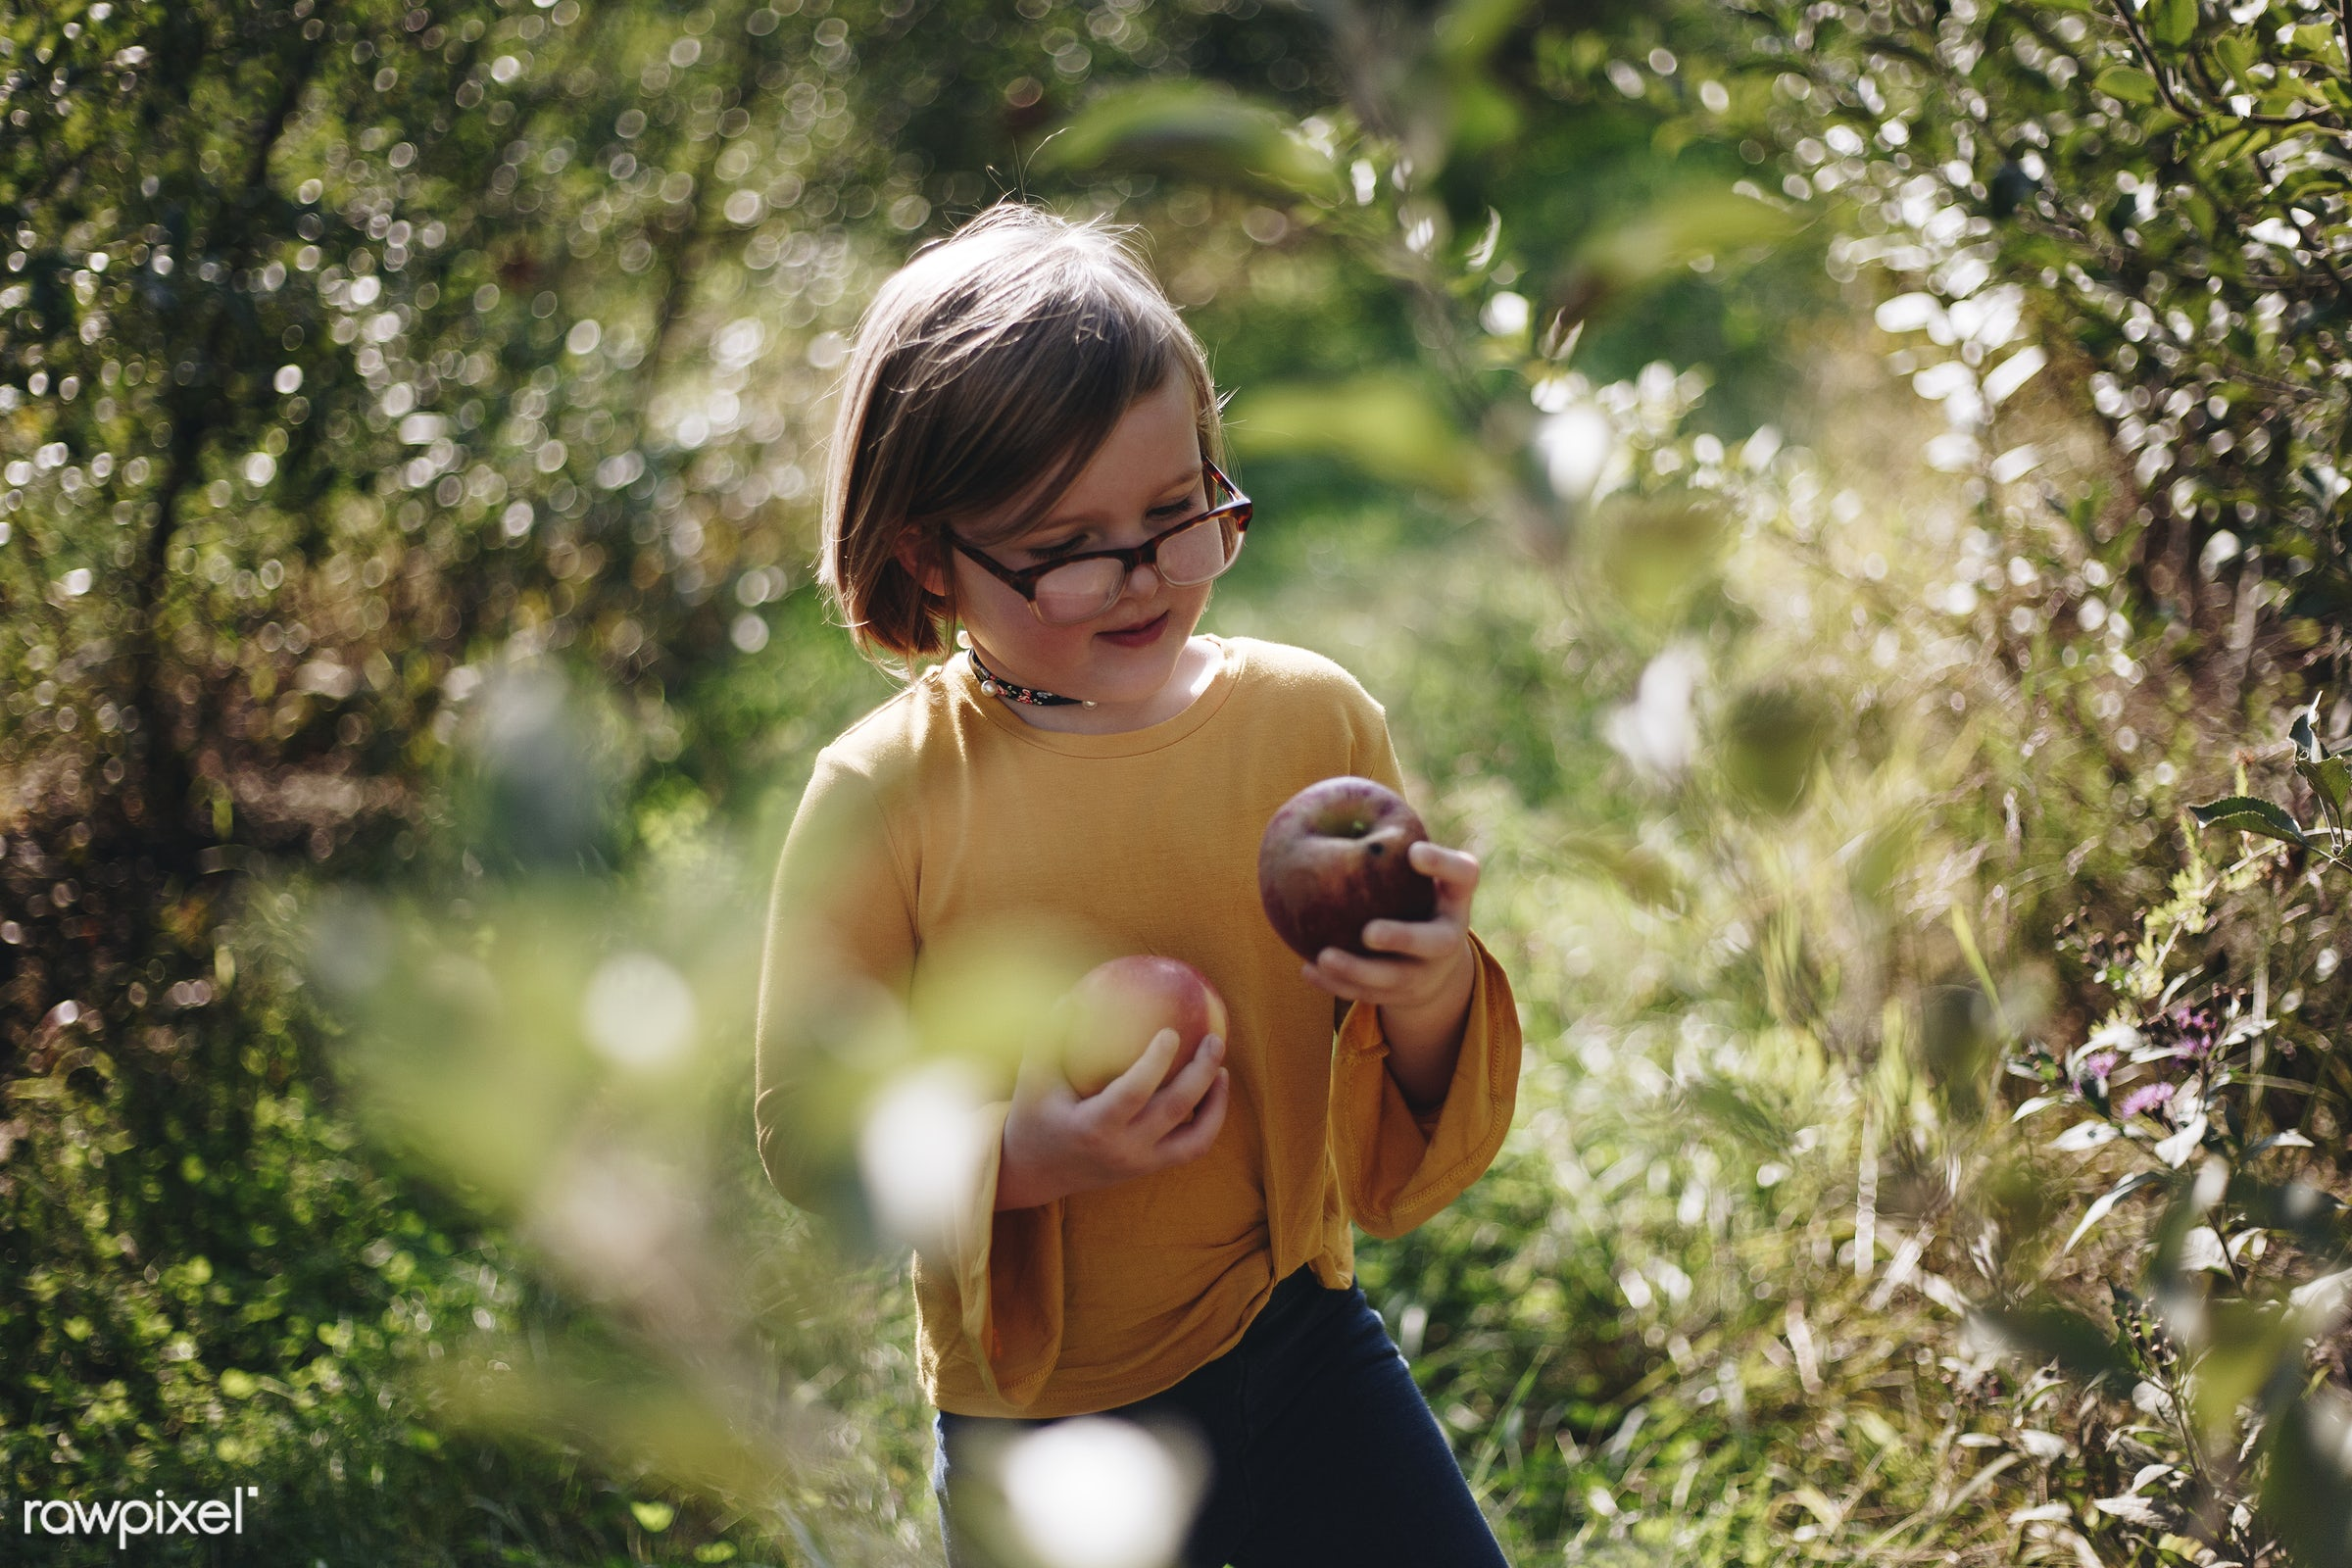 Little girl picking holding some apples - alone, america, american, apple, canada, canadian, cheerful, child, countryside,...